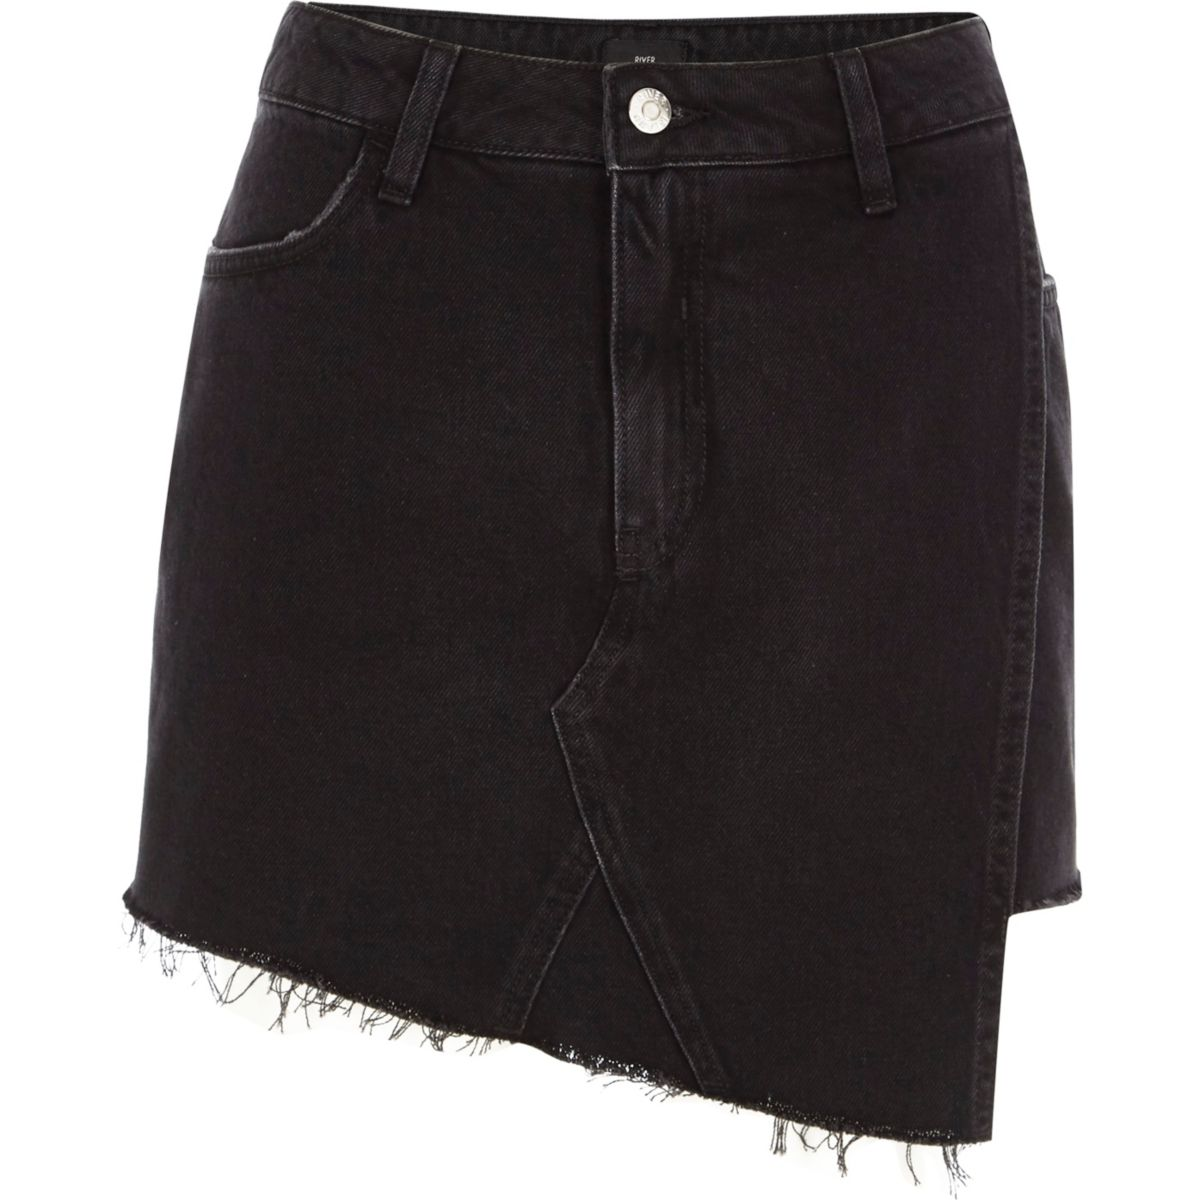 Black frayed hem wrap denim skort